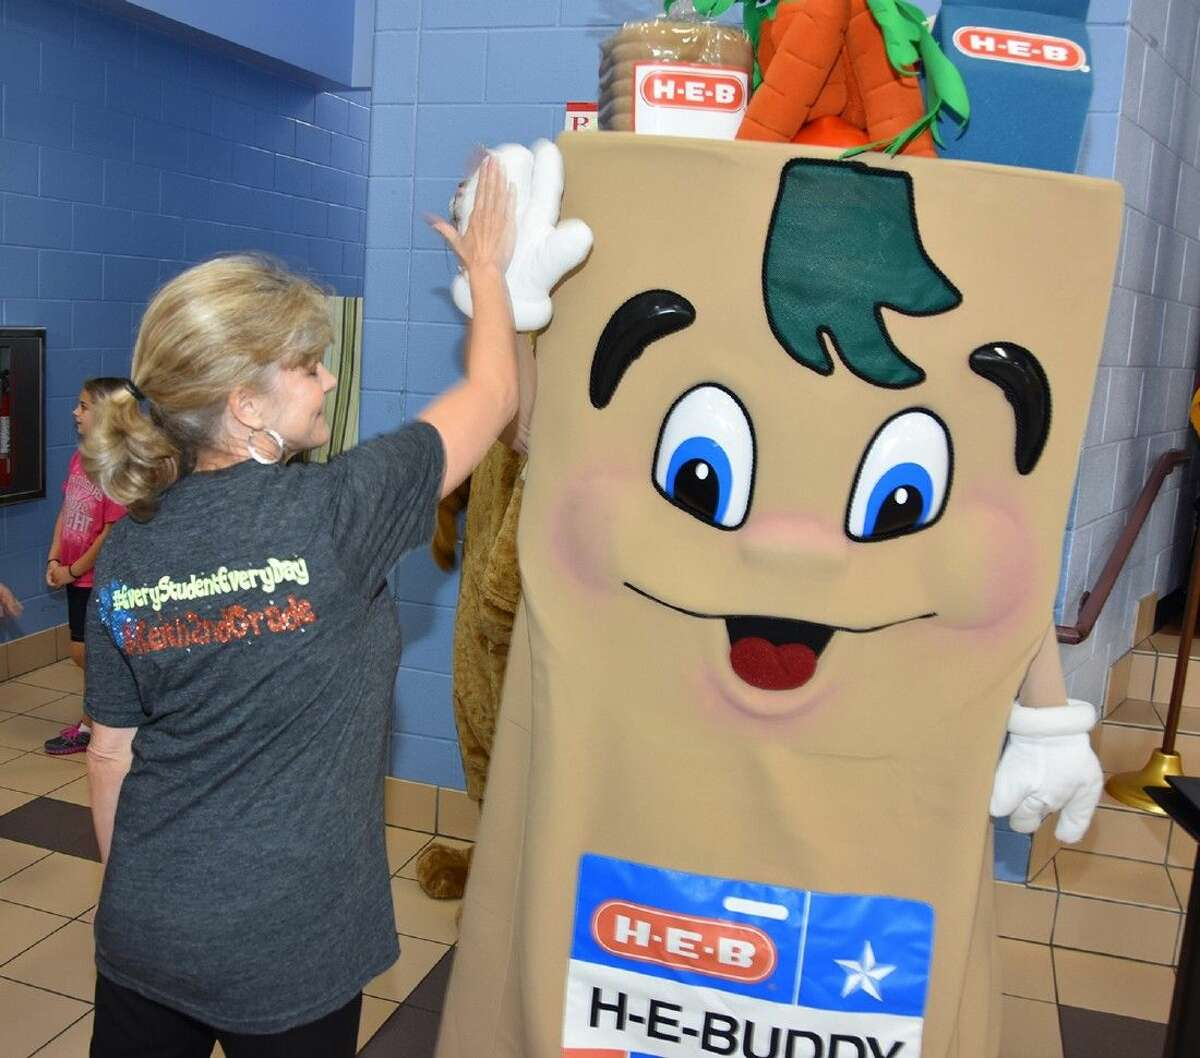 Sherry Whitmire, Keith second-grade teacher, gives a high-five to H-E-Buddy during the Adopt-a-School celebration.